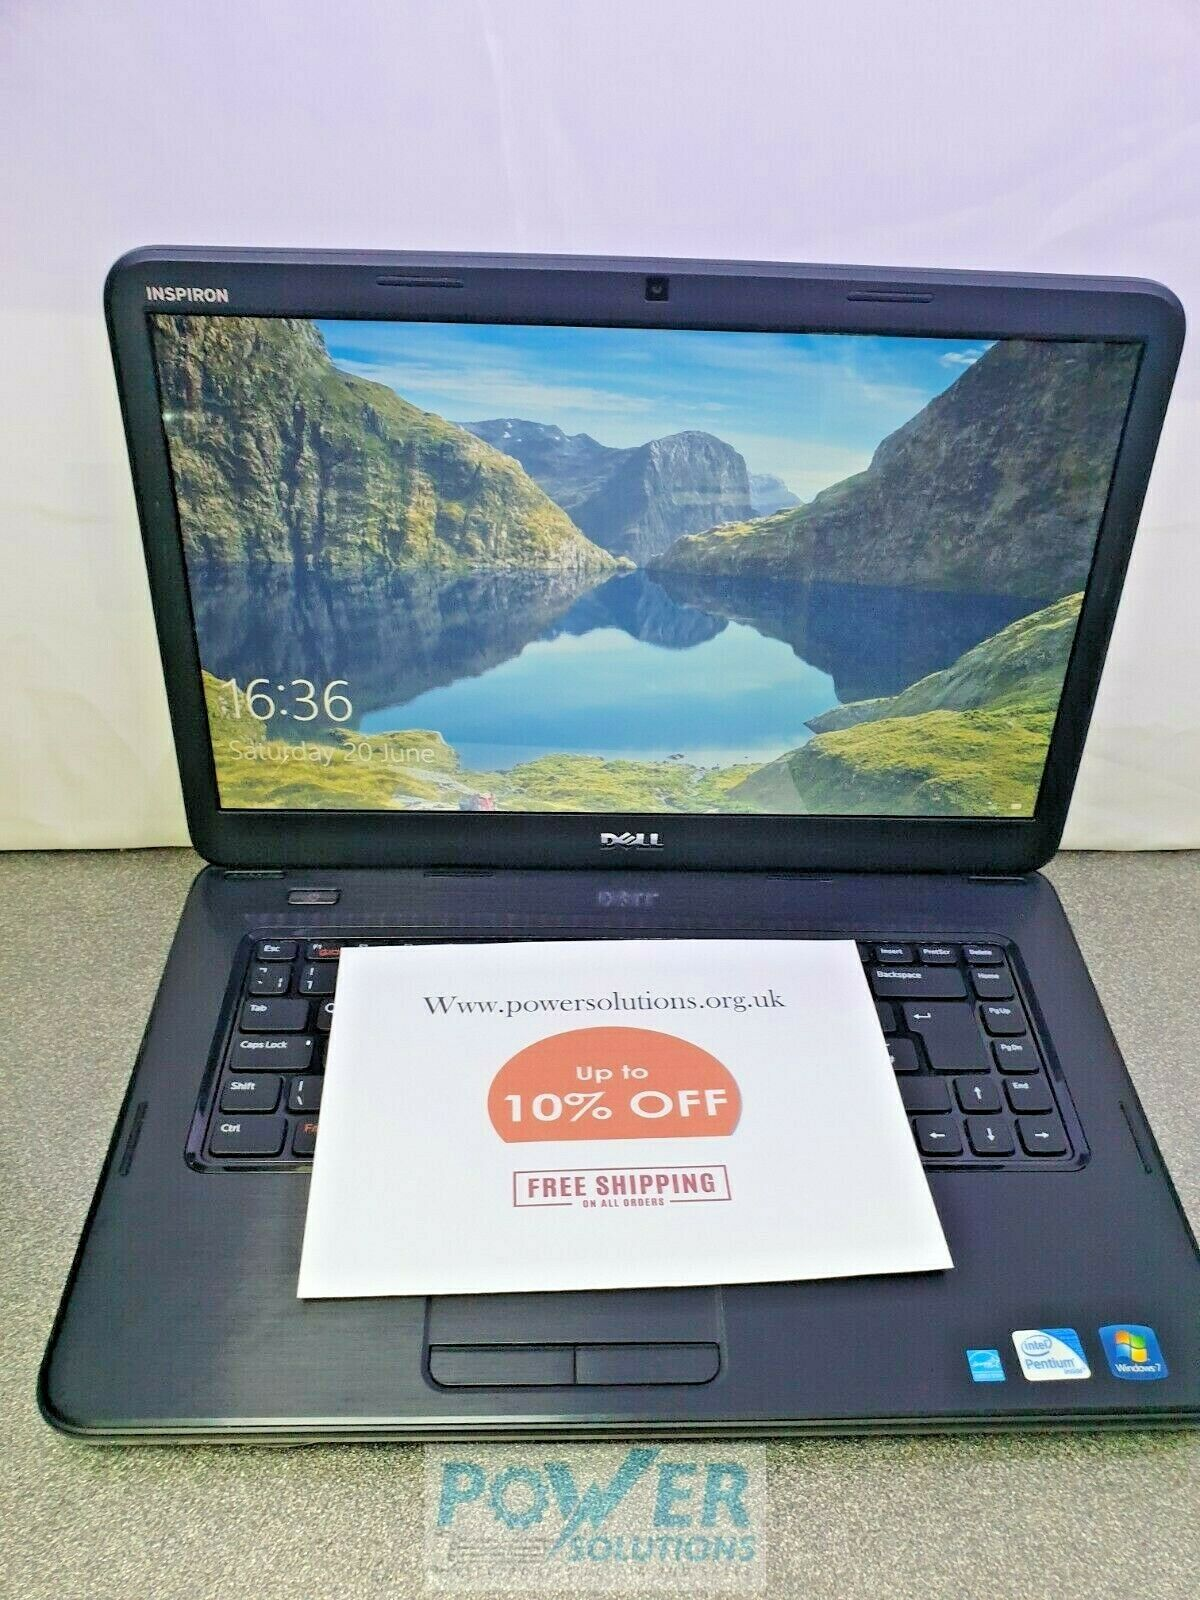 Dell Inspiron 15 5040 156 WINDOWS 10 3GB 320GB LAPTOP 133445654861